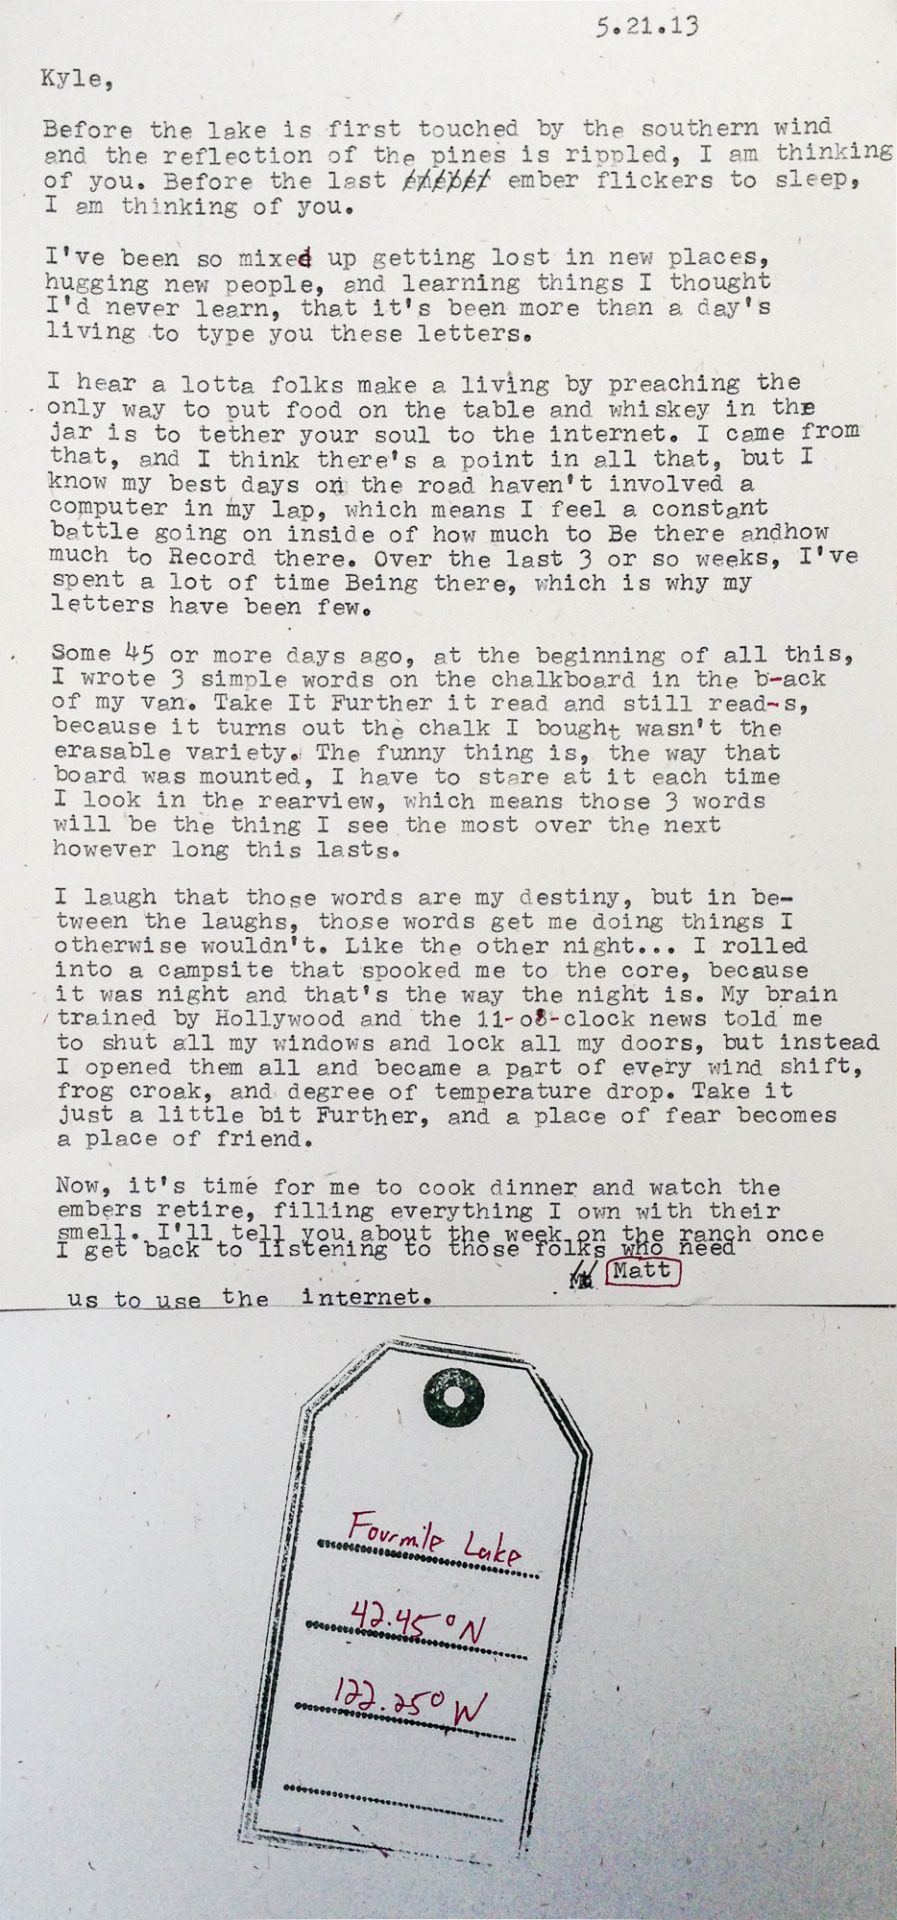 Letter written to the reader, Kyle, about Taking it Further